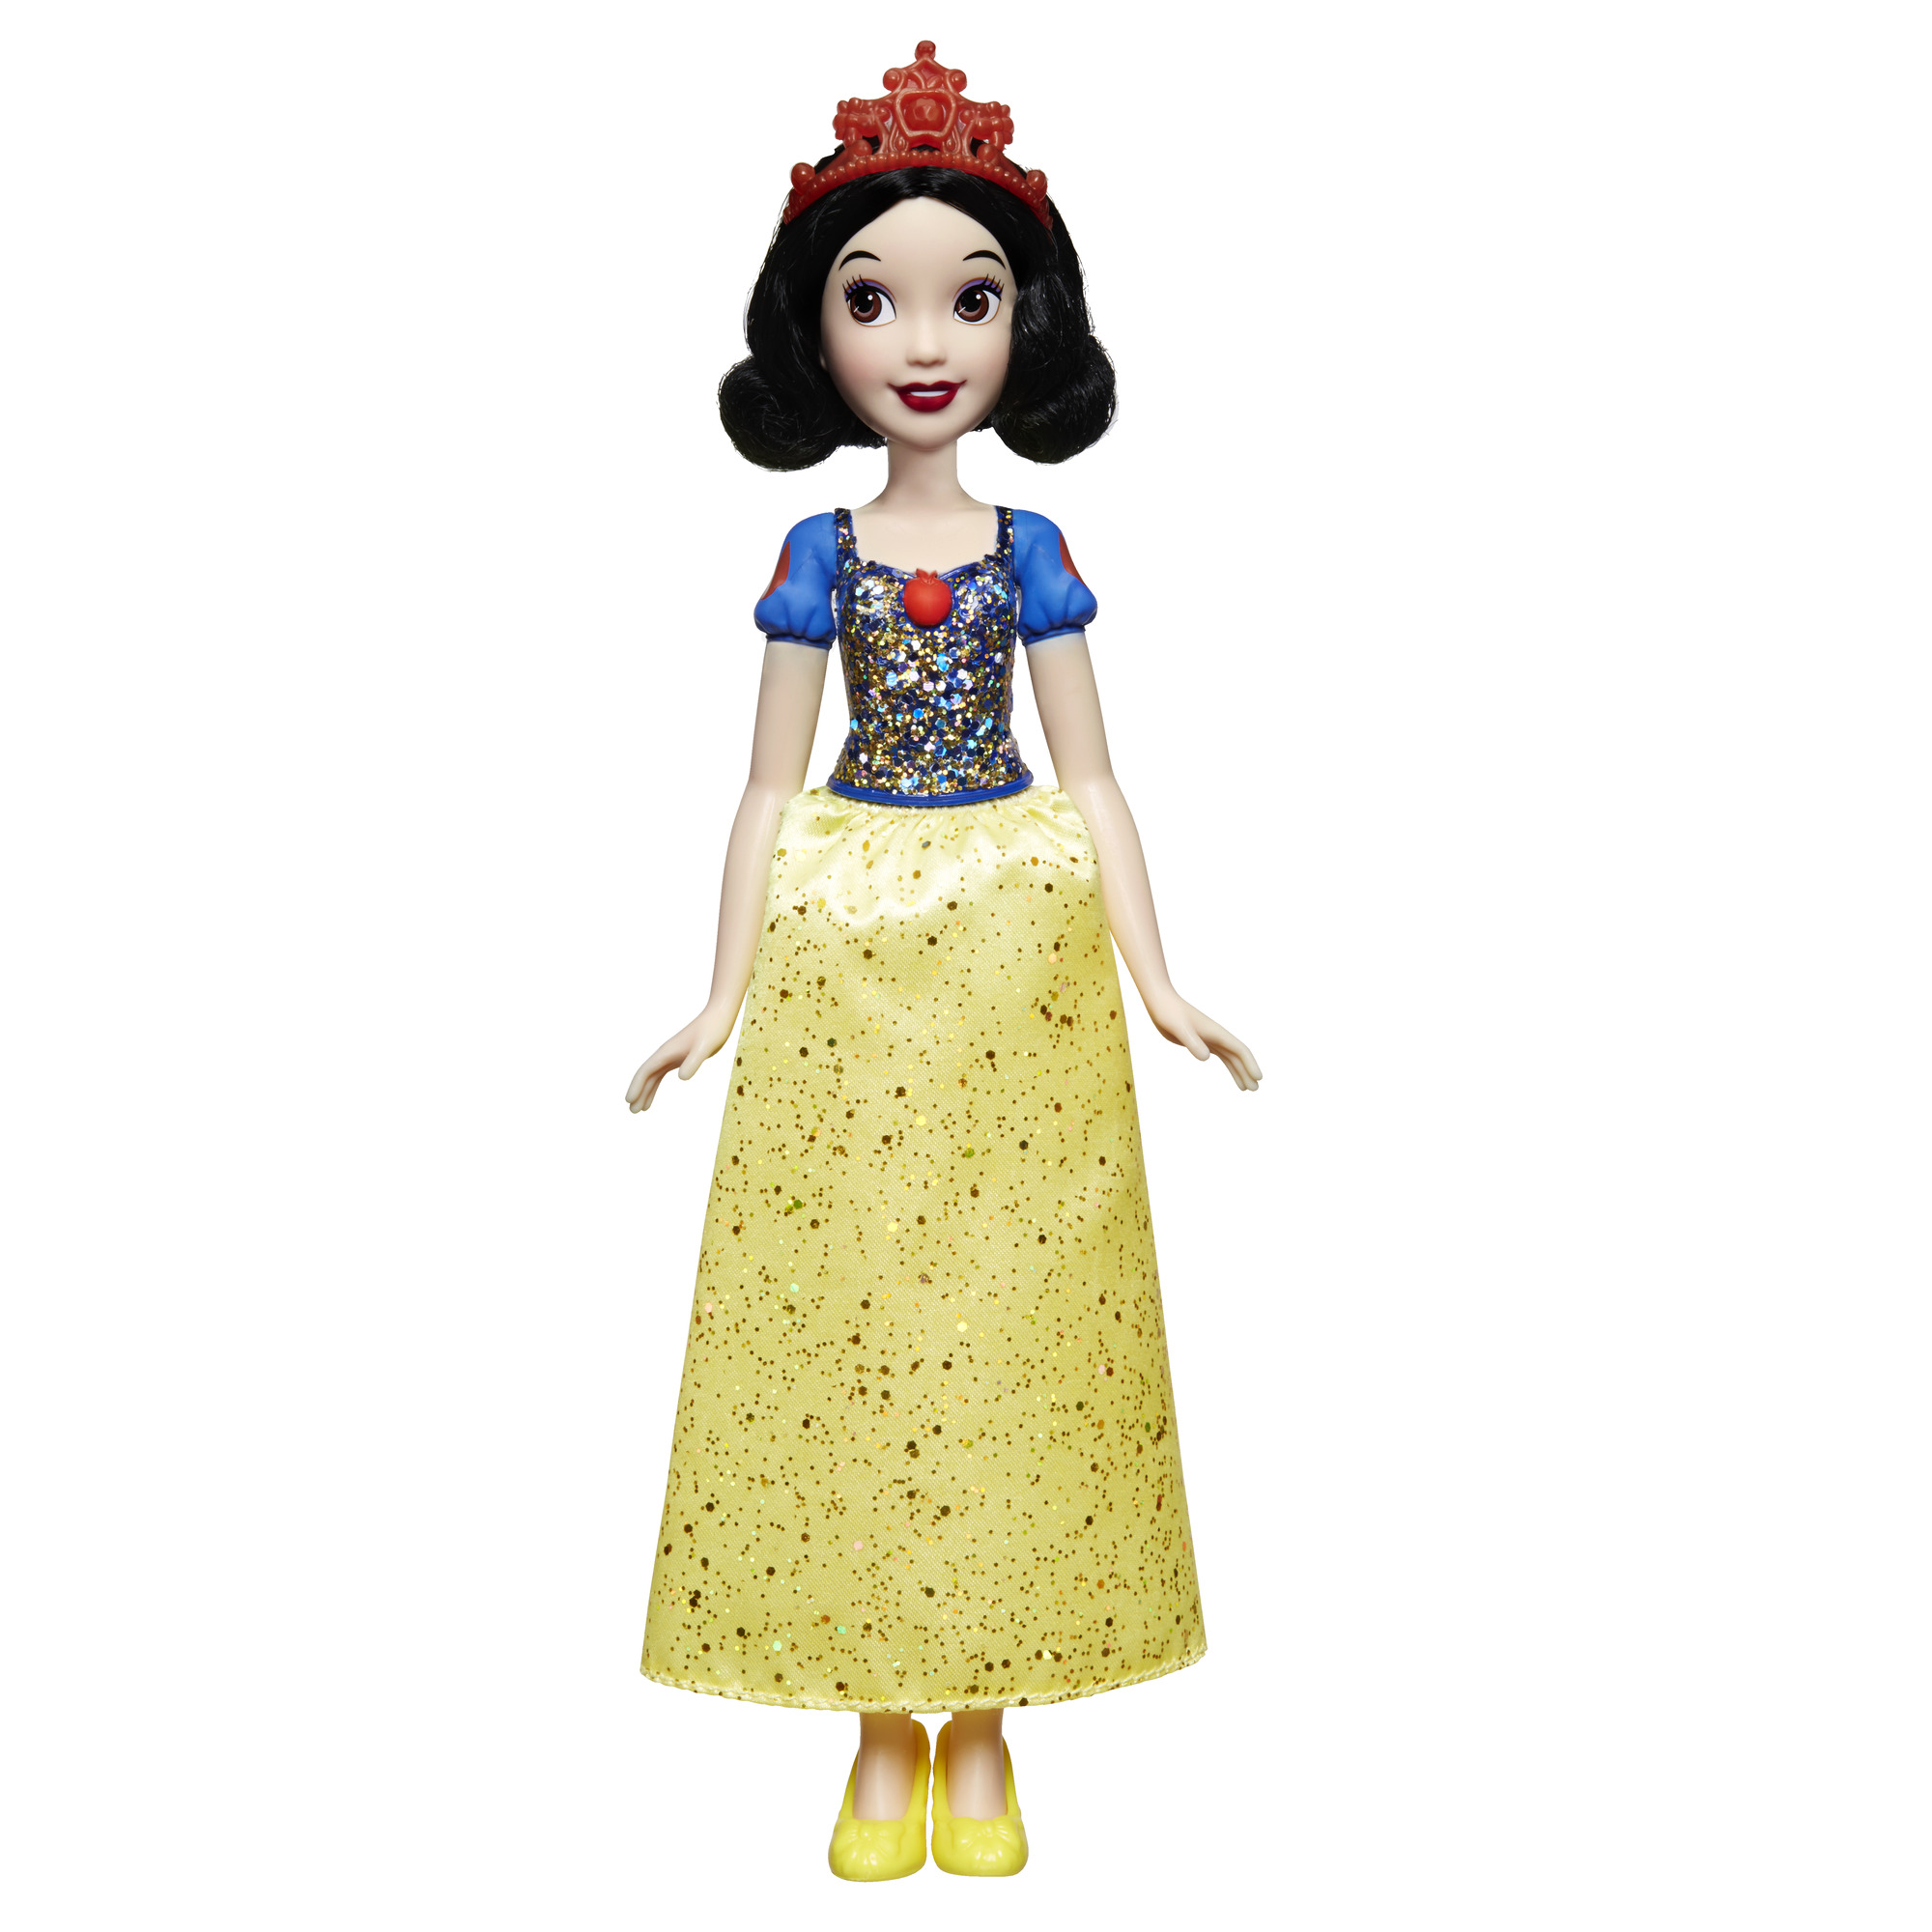 Disney Princess Royal Shimmer Snow White, Ages 3 and up